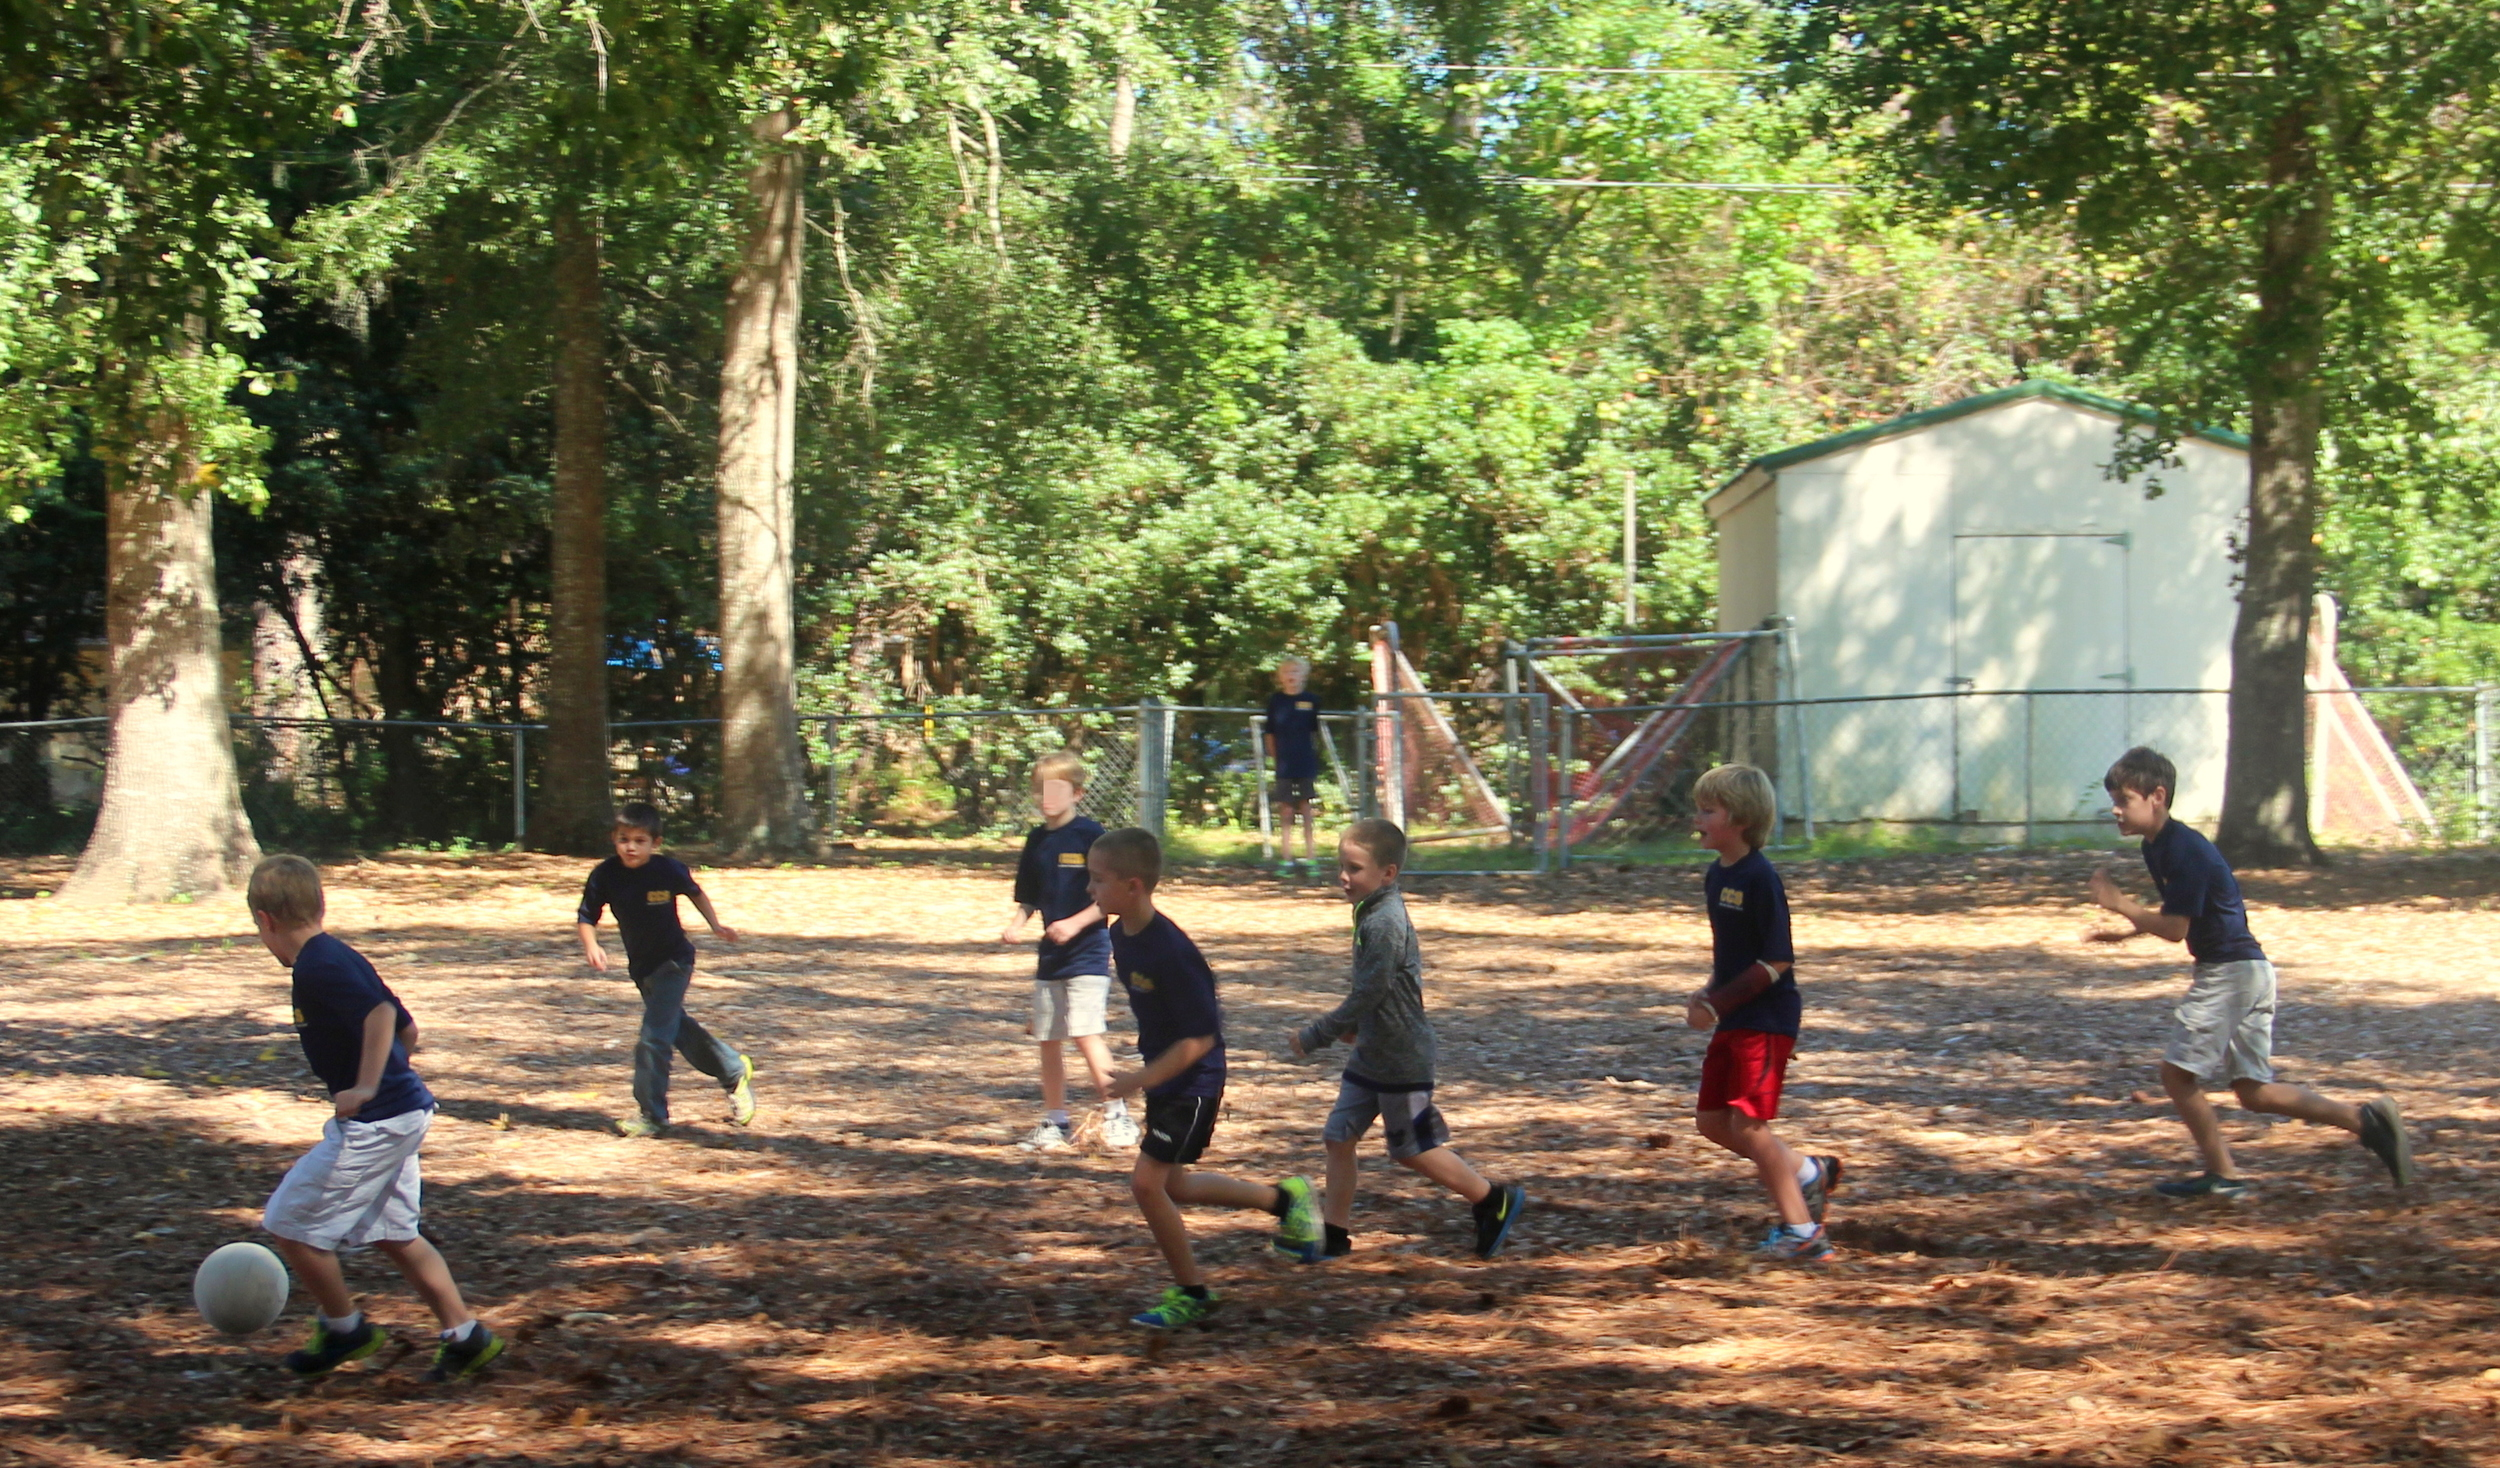 During the after school program, the students enjoy playing different sports.